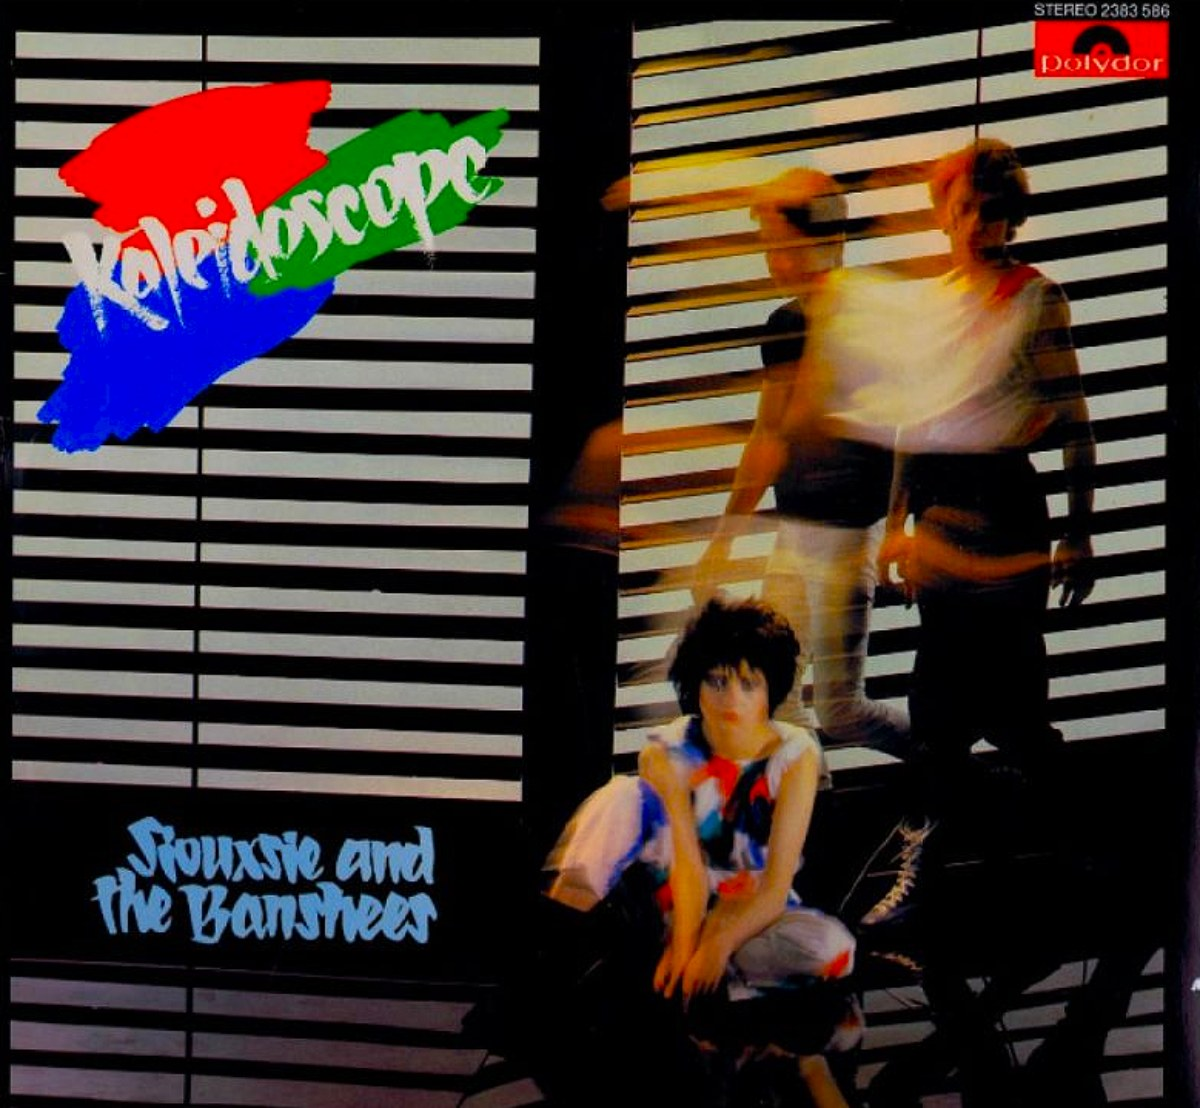 Siouxsie And The Banshees, альбом «Kaleidoscope» (1980)